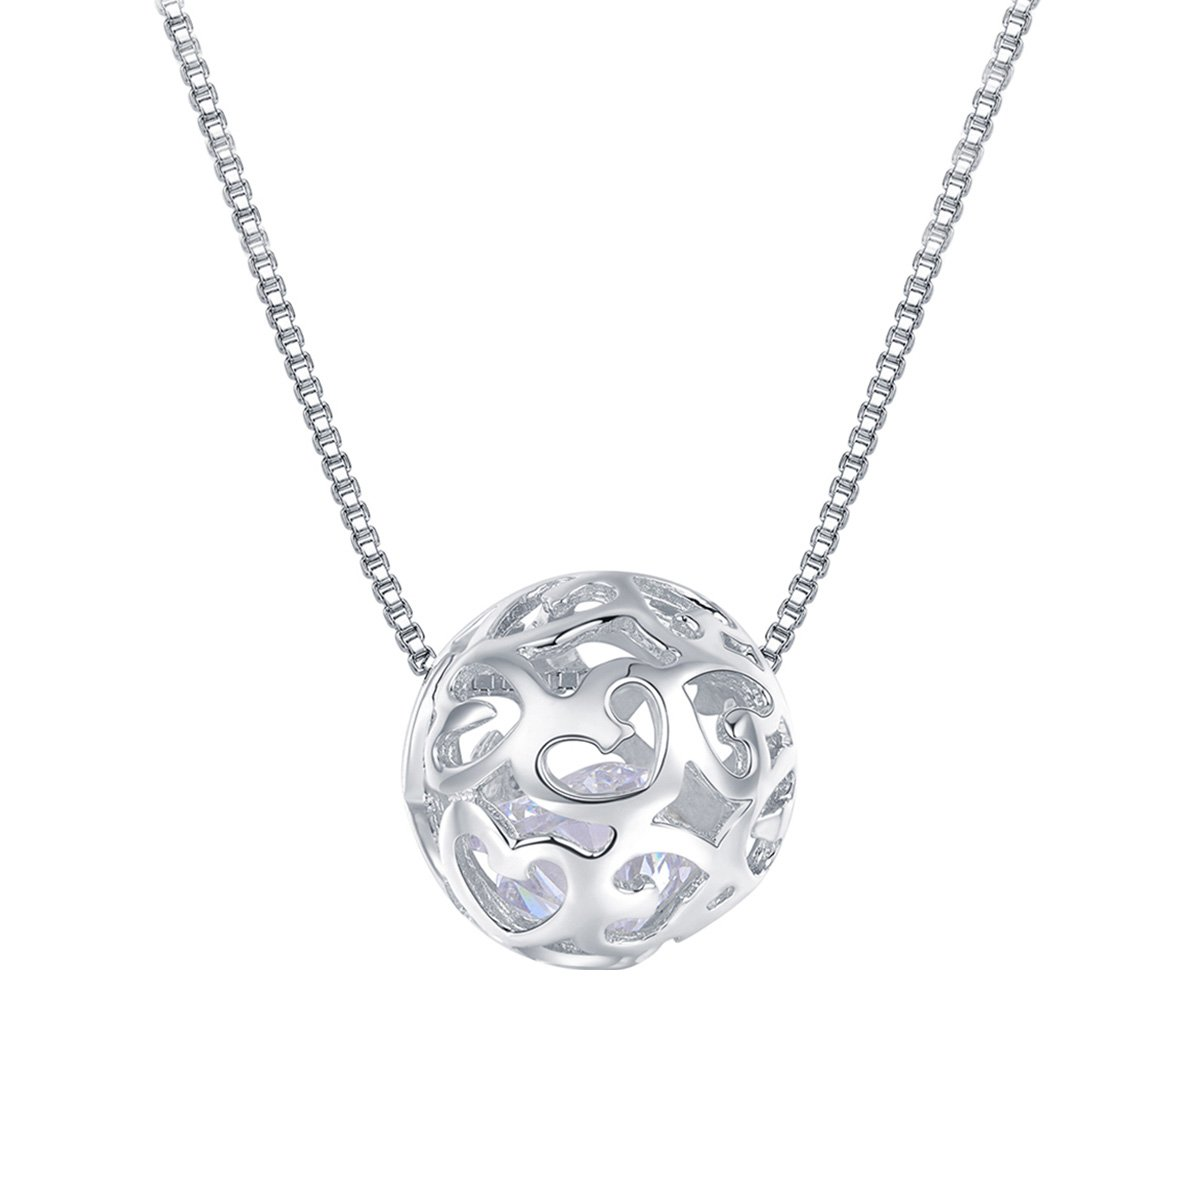 Merdia 925 Sterling Silver Necklaces with Pendant Cut Beads Ball Chain Necklace for Women Charm Jewelry